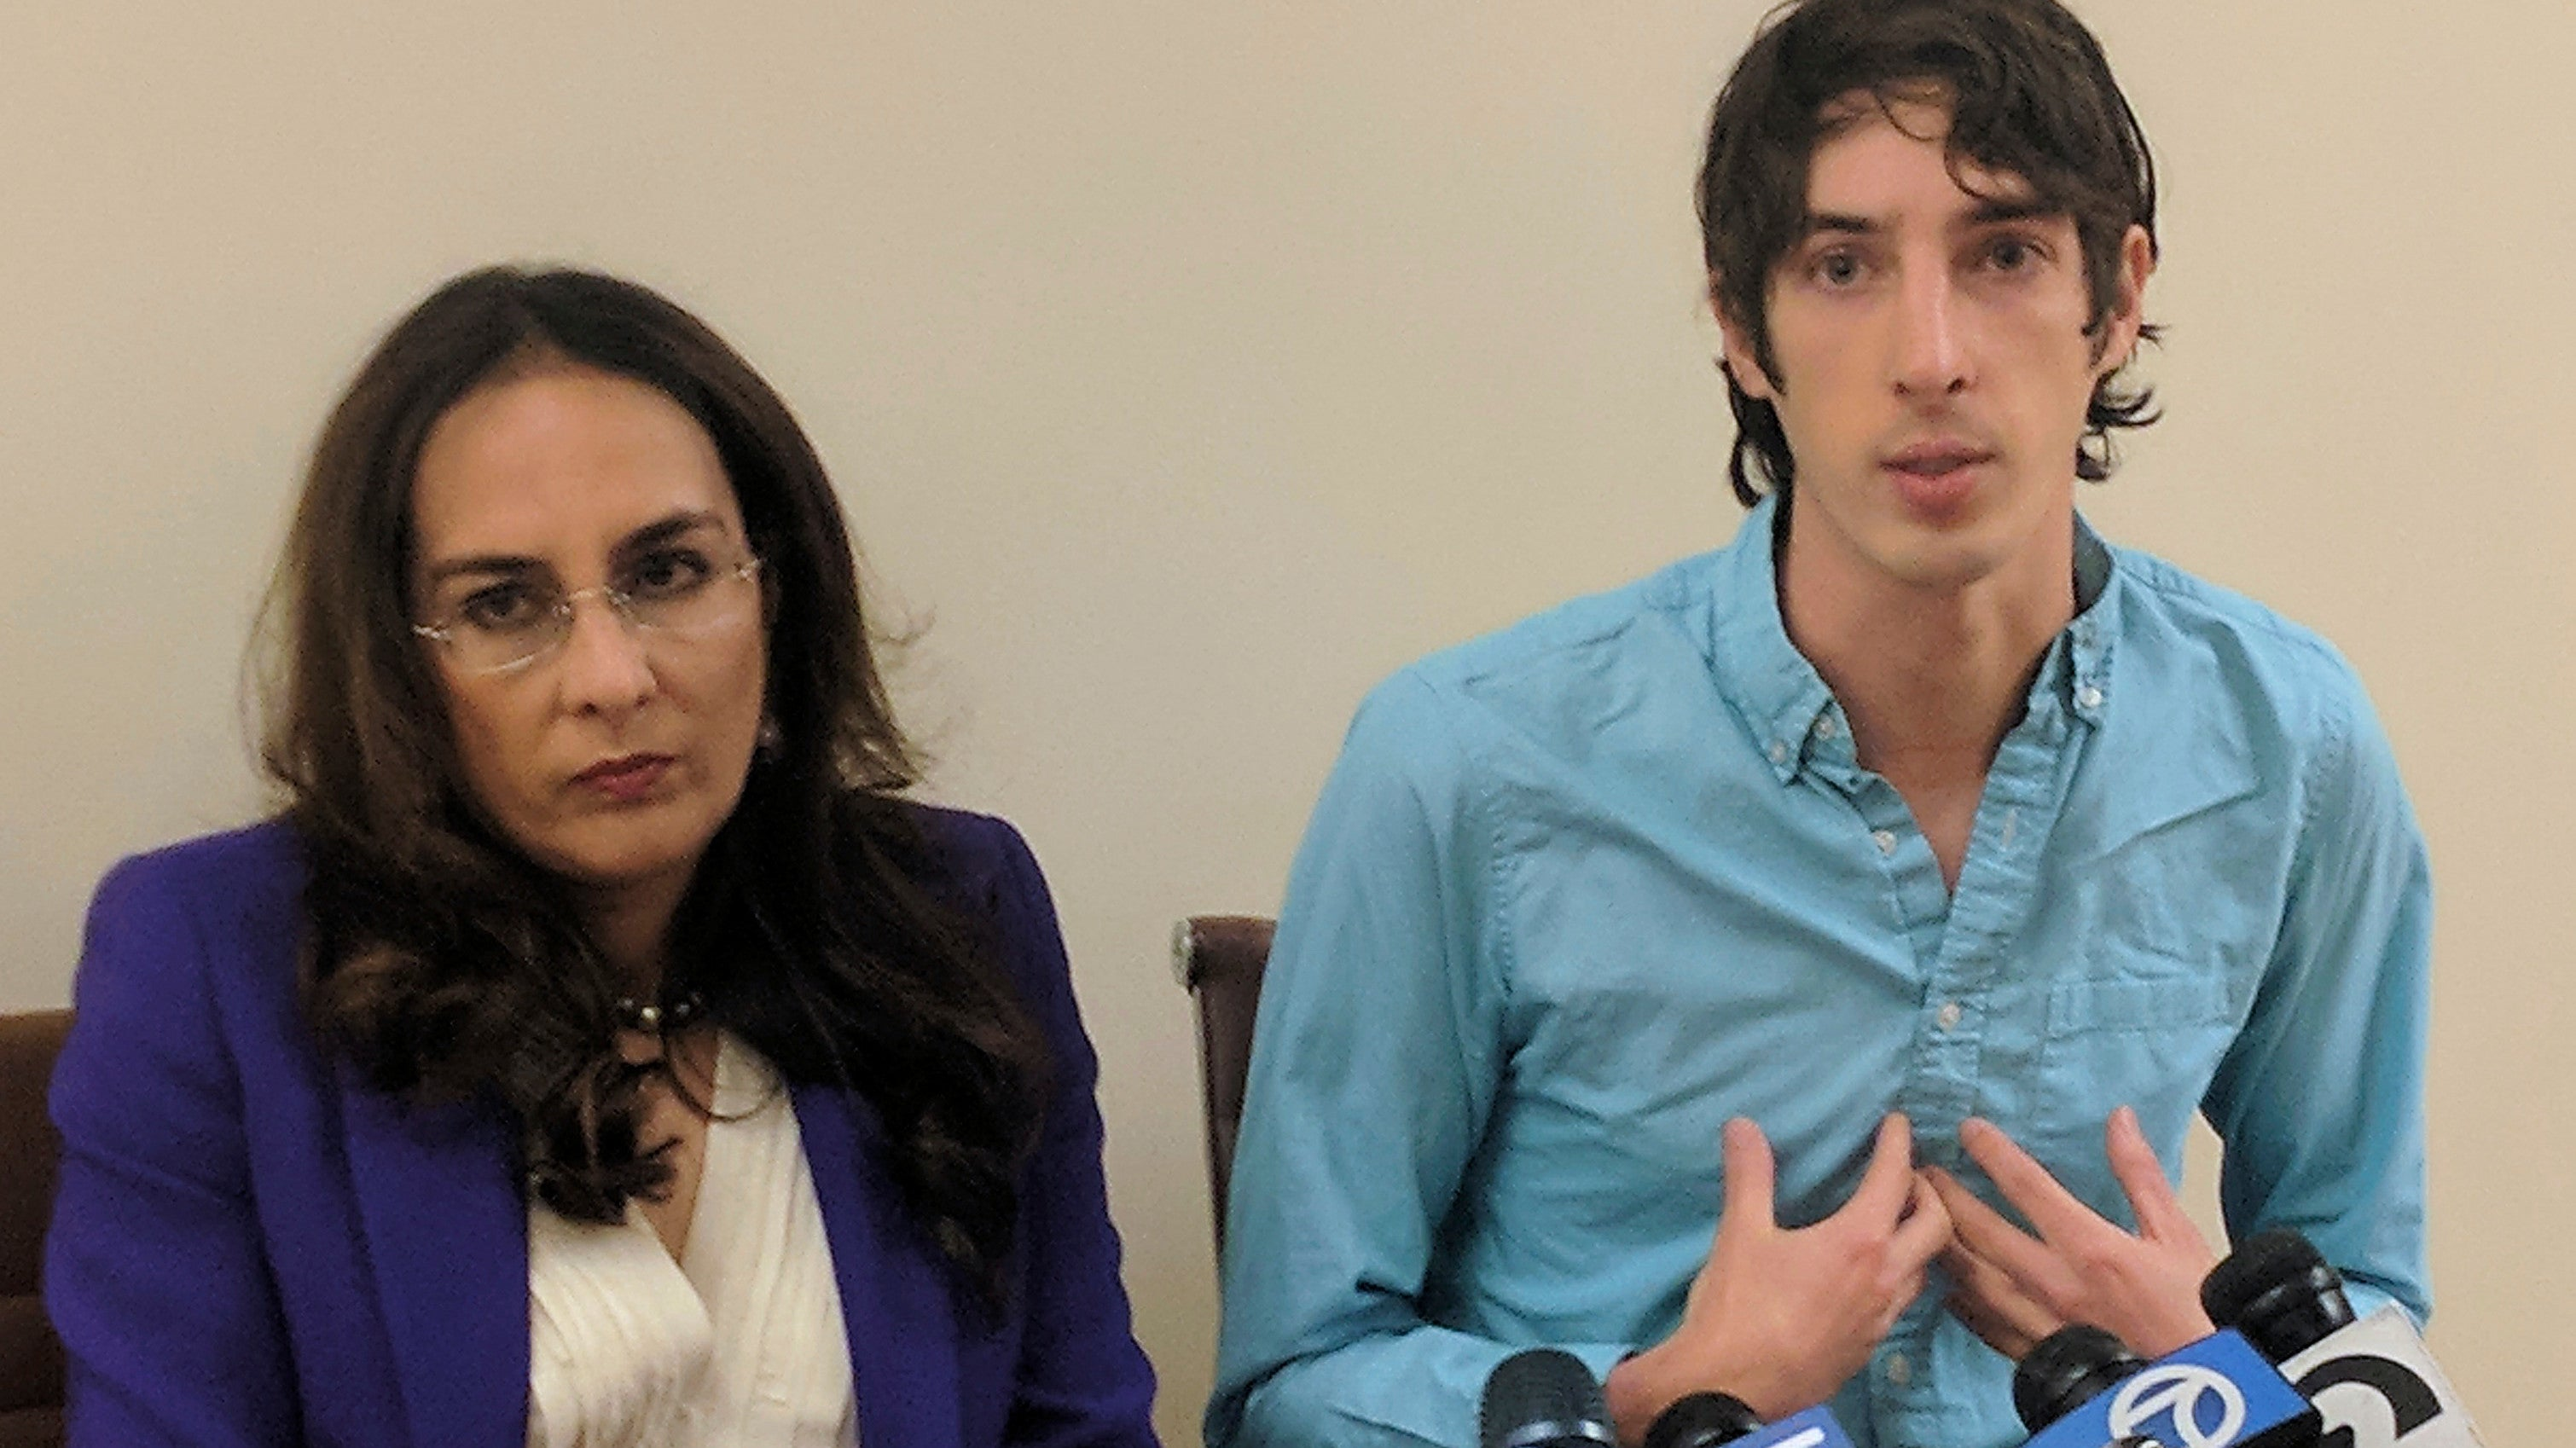 Google Fails To Have Lawsuit Originally Brought By James Damore Thrown Out